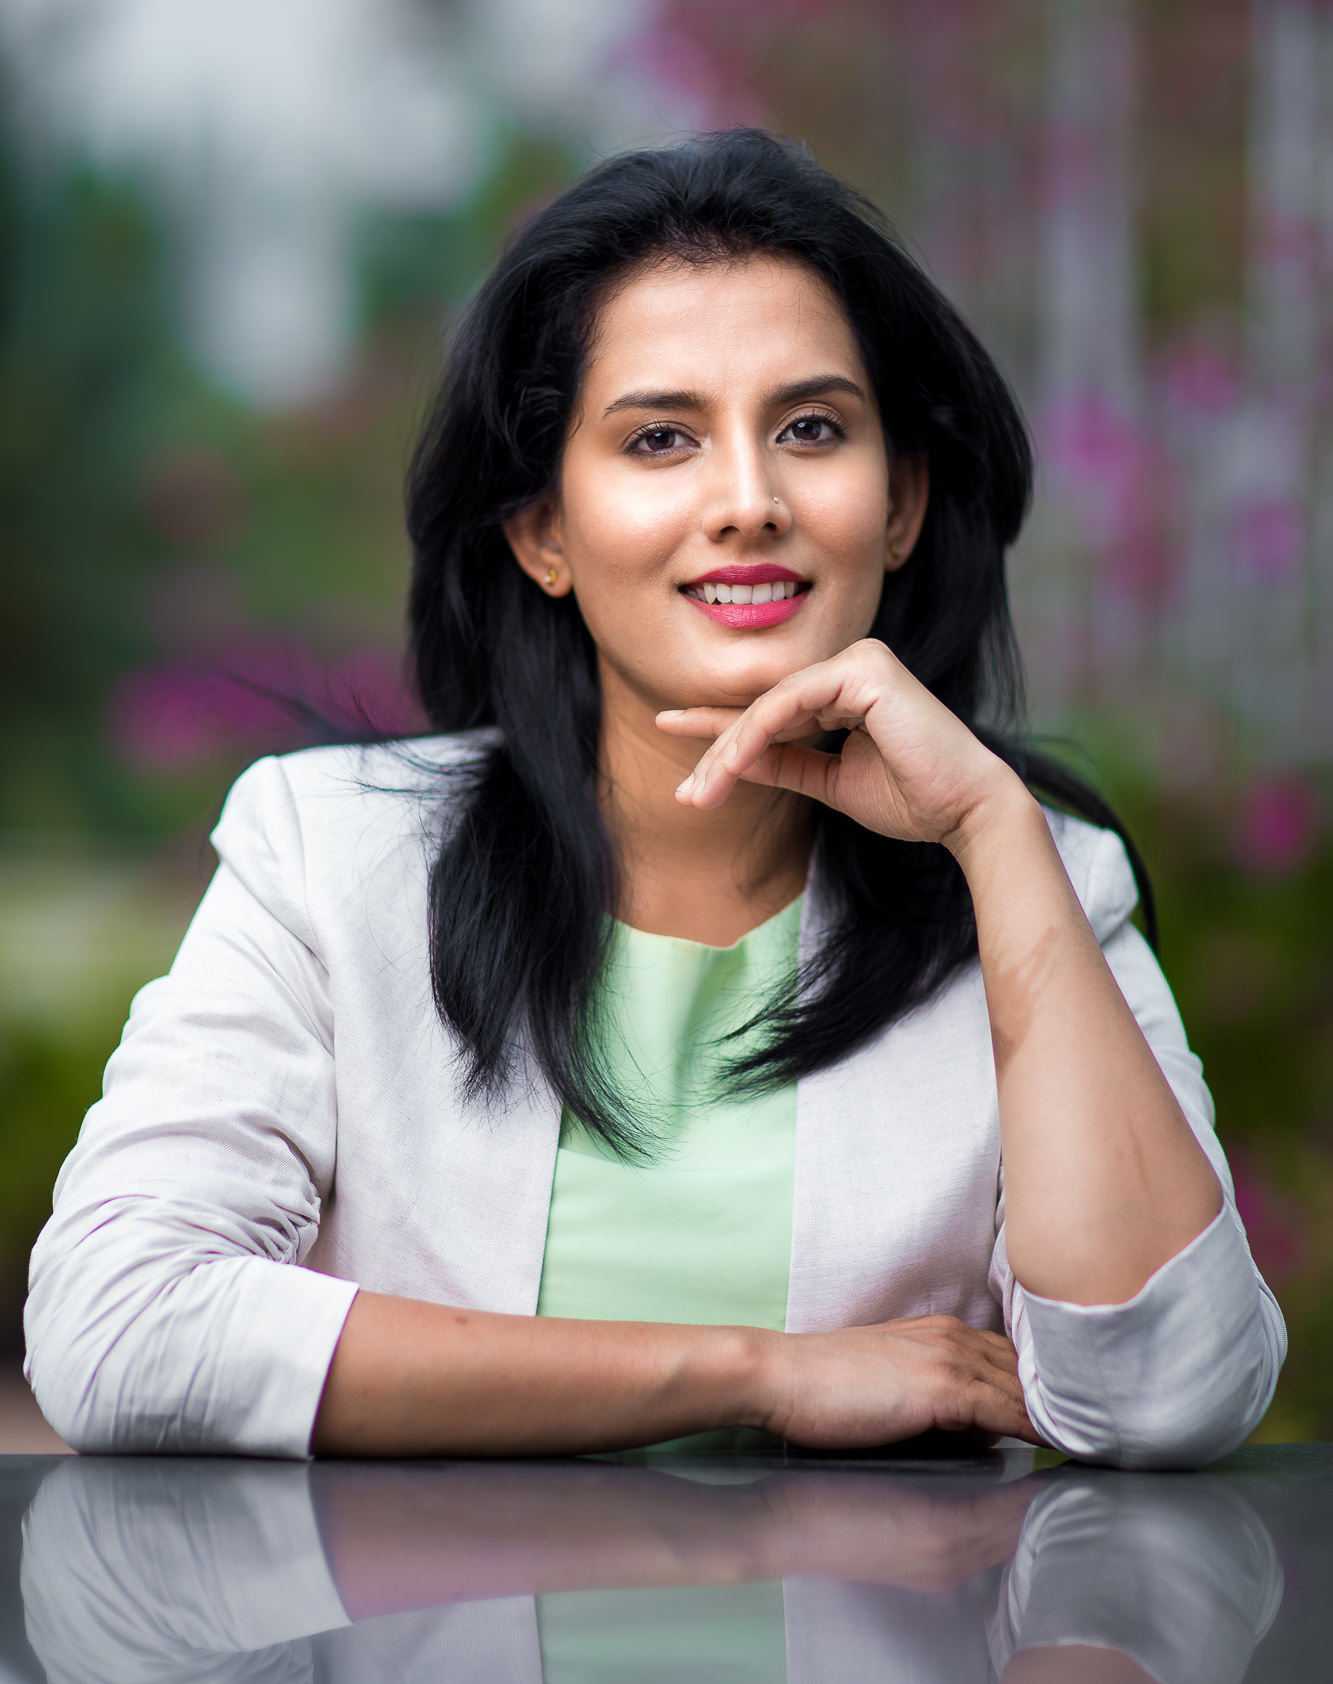 Neeta-Shankar-Photography-Business-Linkedin-profile-pictures